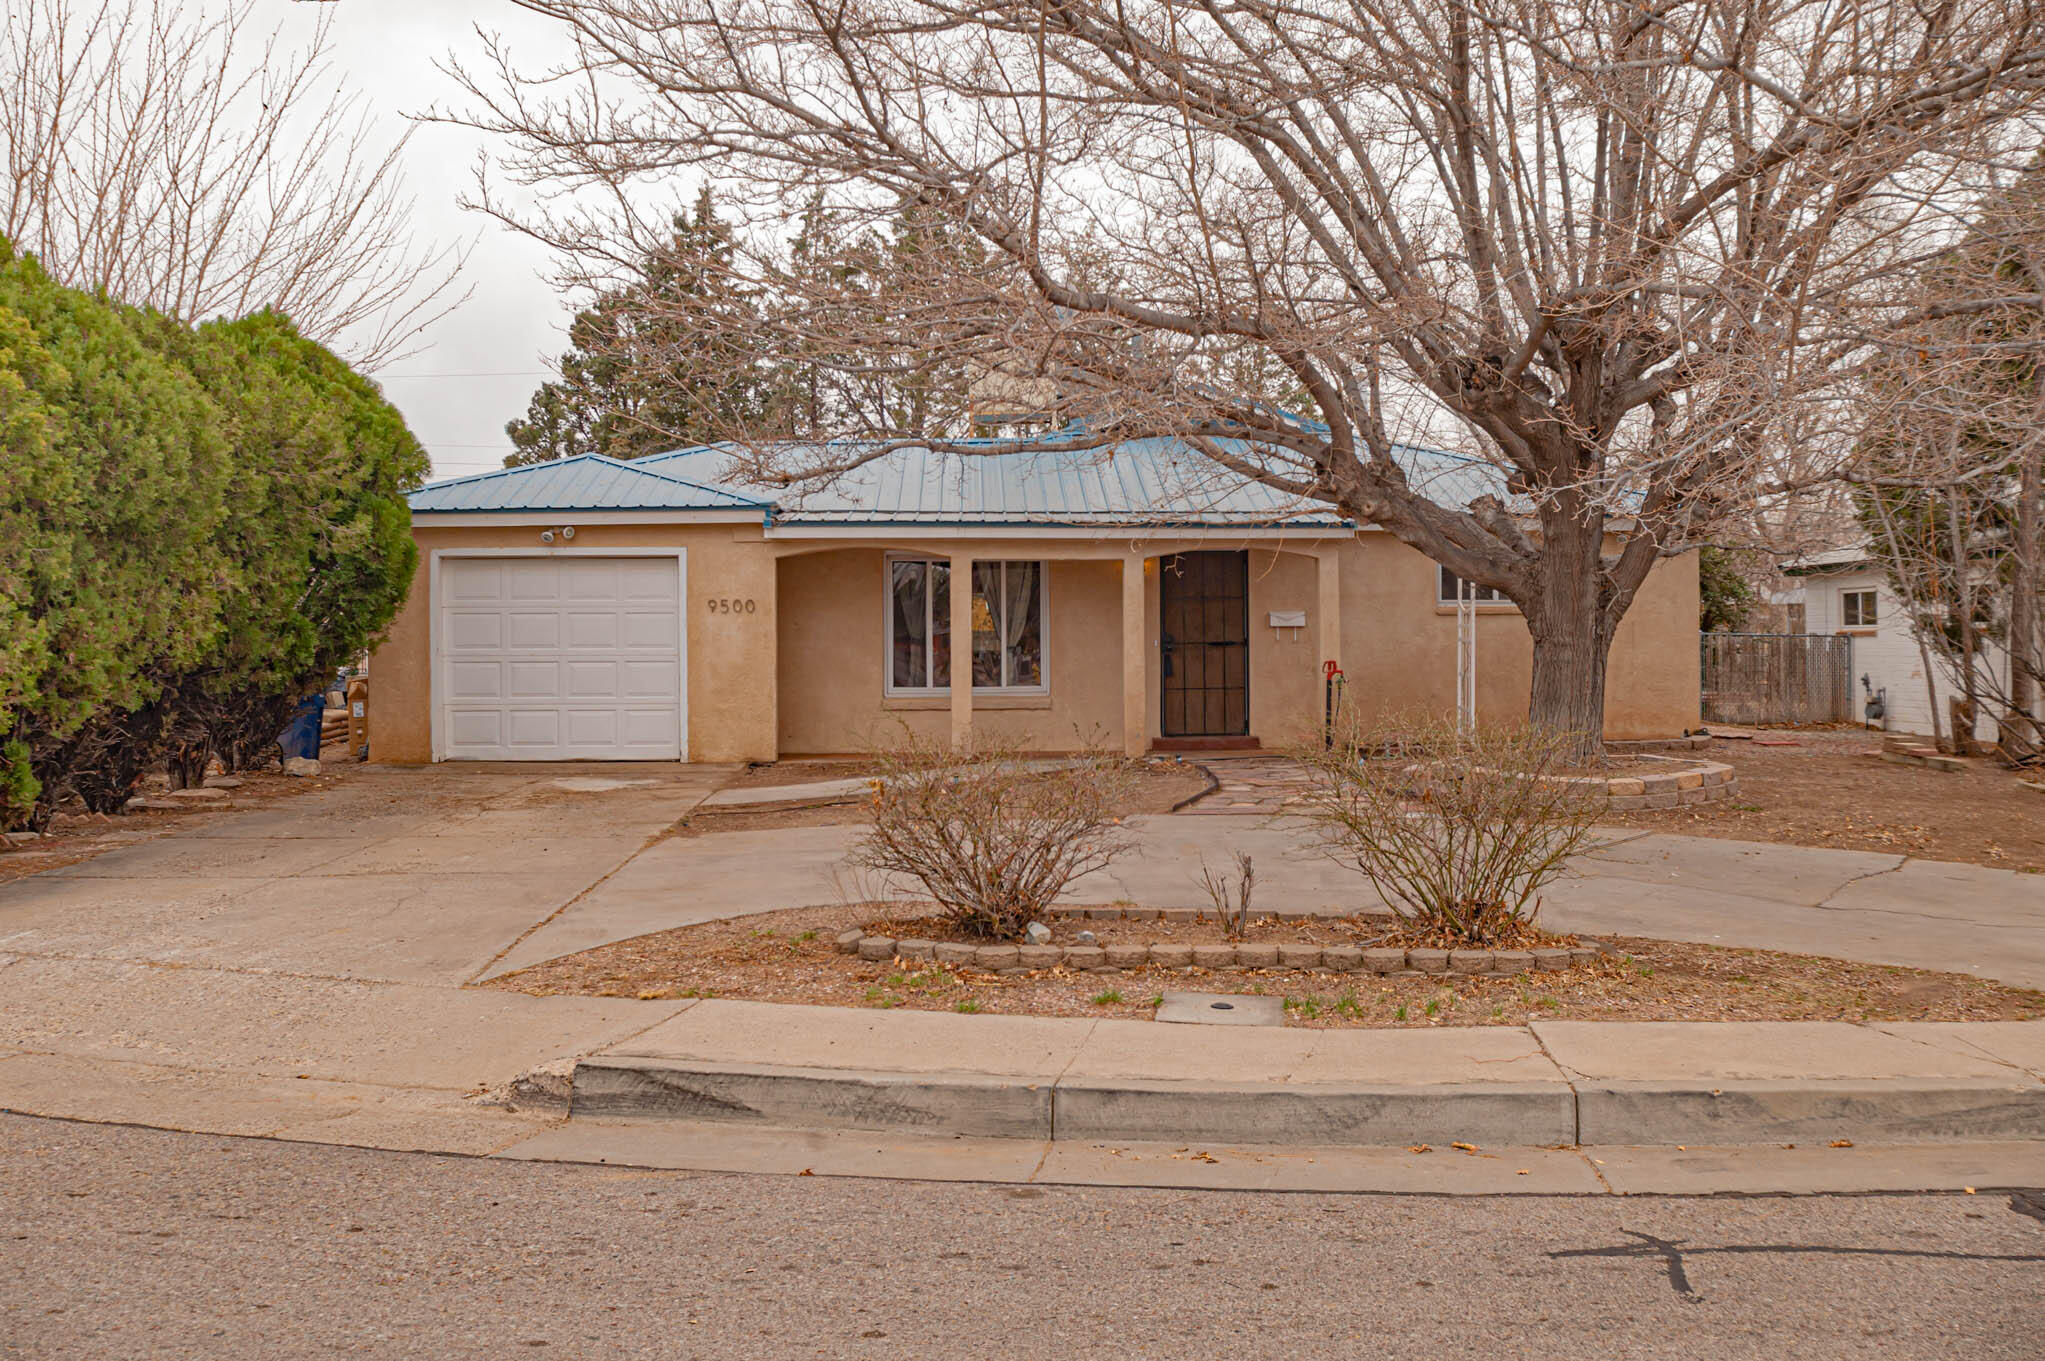 You'll love coming home to this charming property!  Recently remodeled (2018) and leased to gentle renters, this home is ready for new owners.  Great NE Heights location close to schools, parks, Uptown shopping and restaurants. The open floor plan blends the kitchen and living area, and thoughtful touches are everywhere.  This one won't last long!